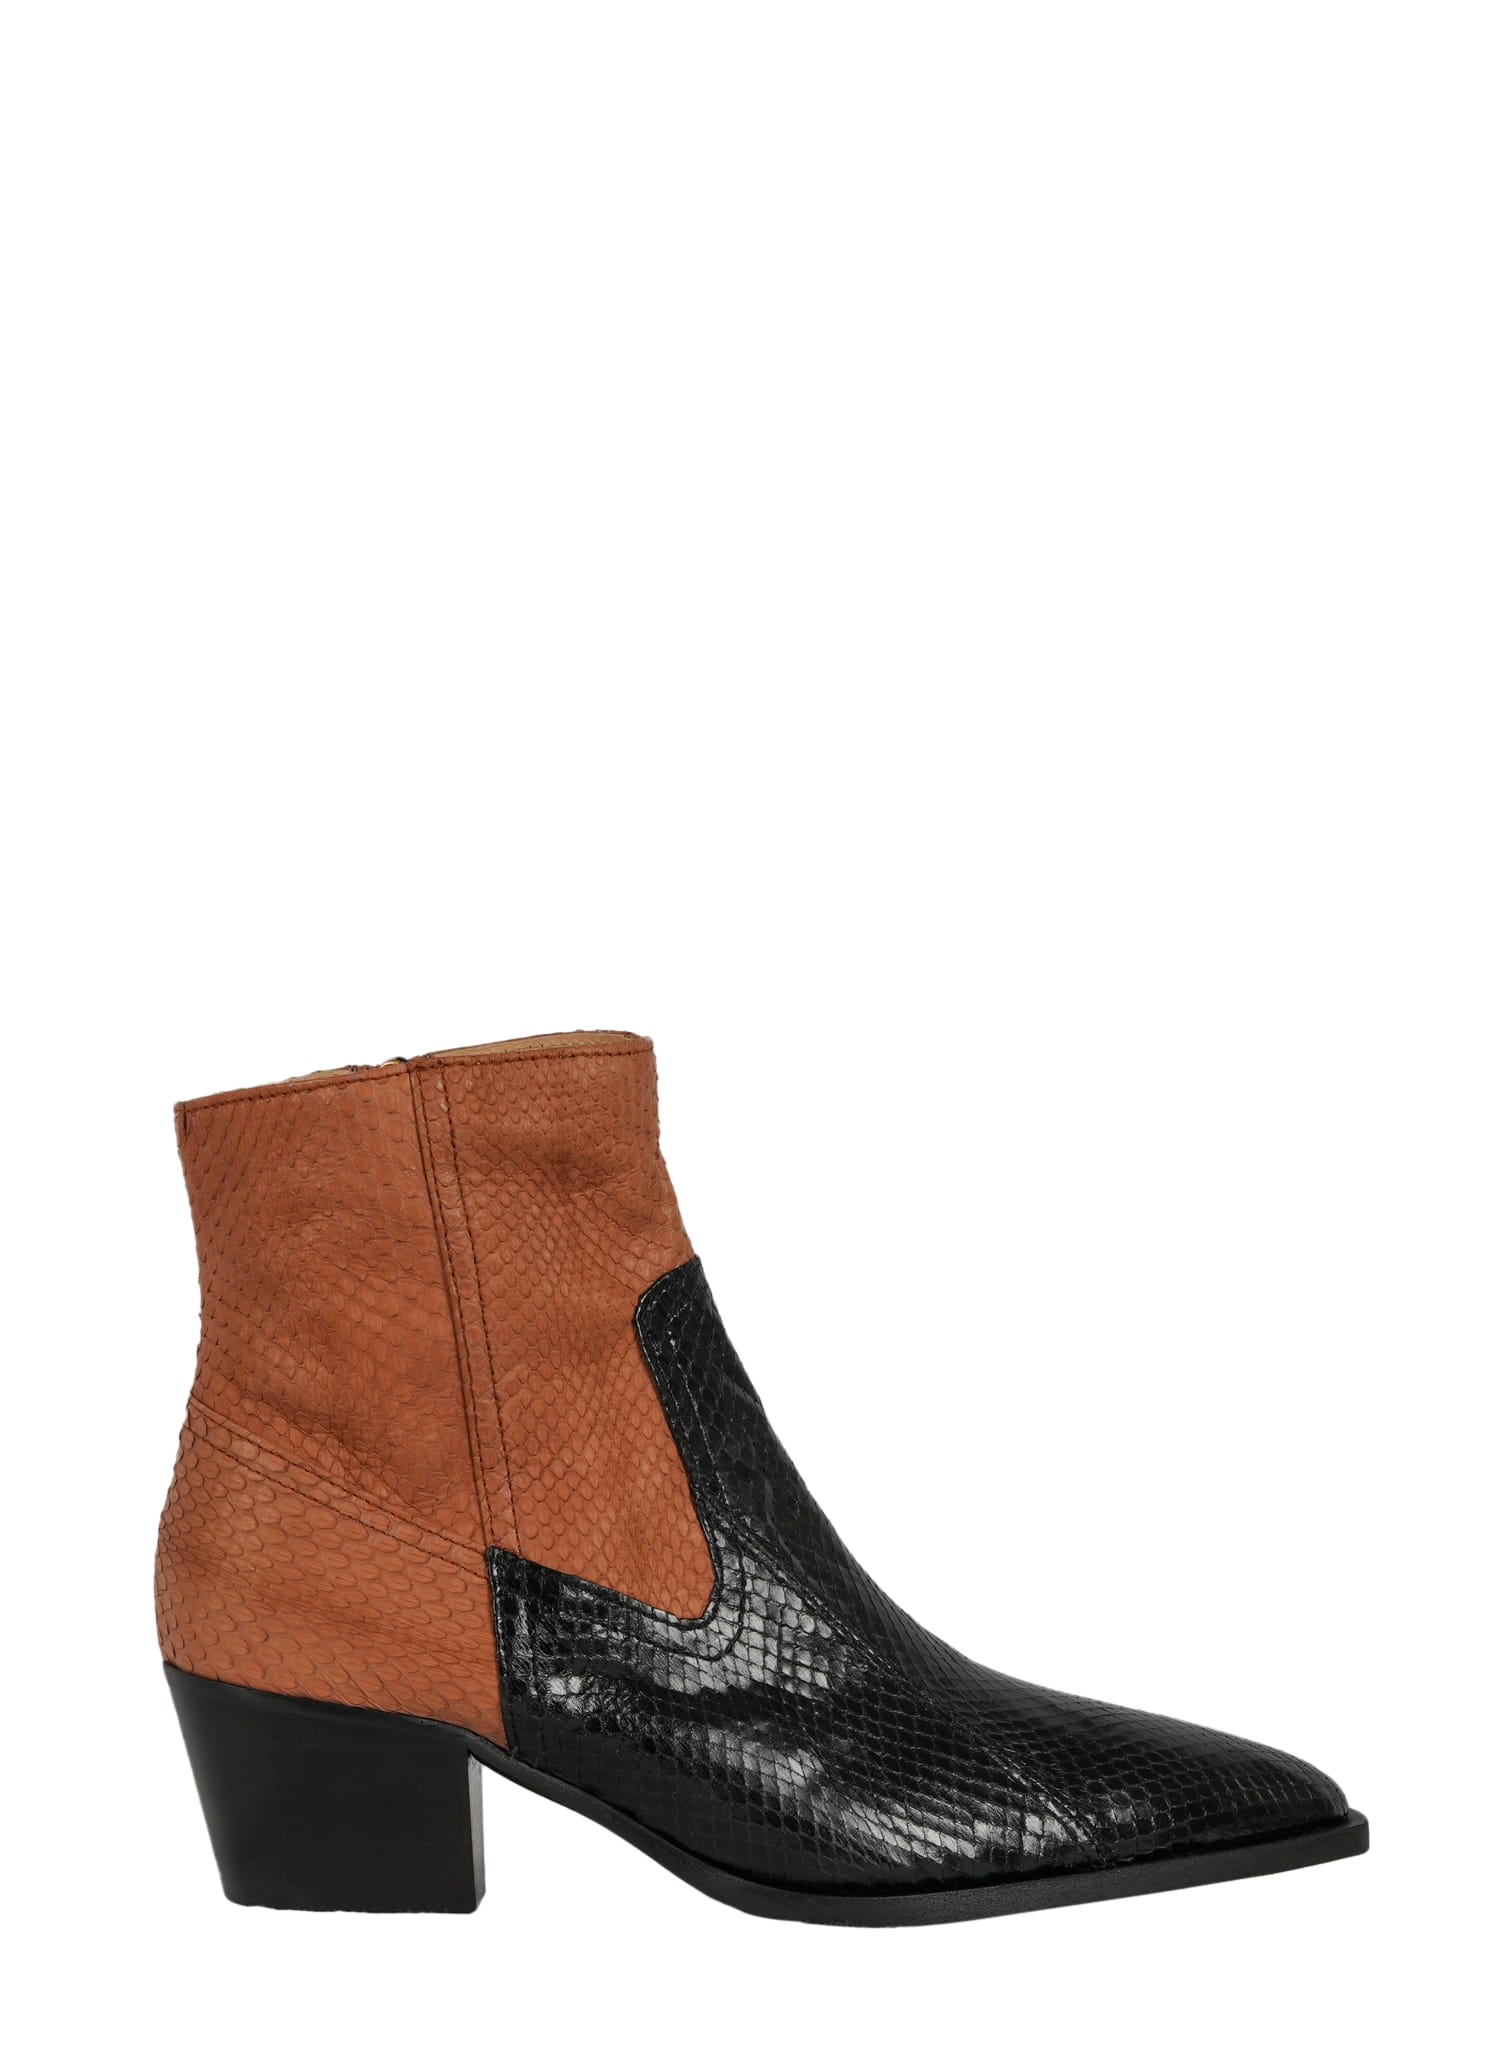 Tronchetto Exotic Boots